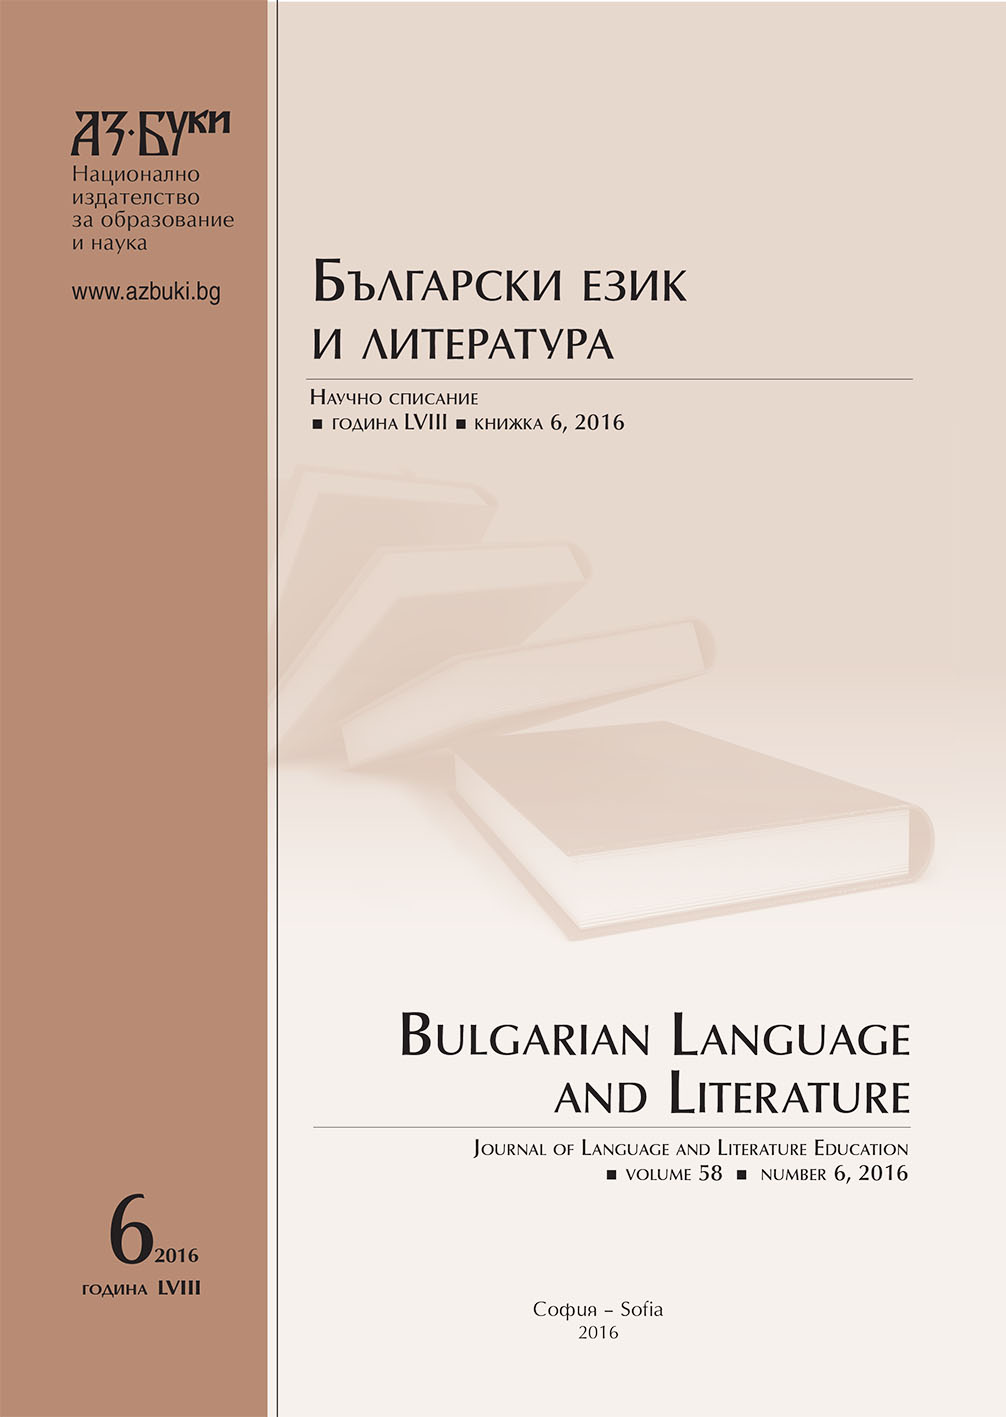 Developing Communicative Competence through Interactive Methods in Bulgarian Language Teaching (function of teamwork) Cover Image